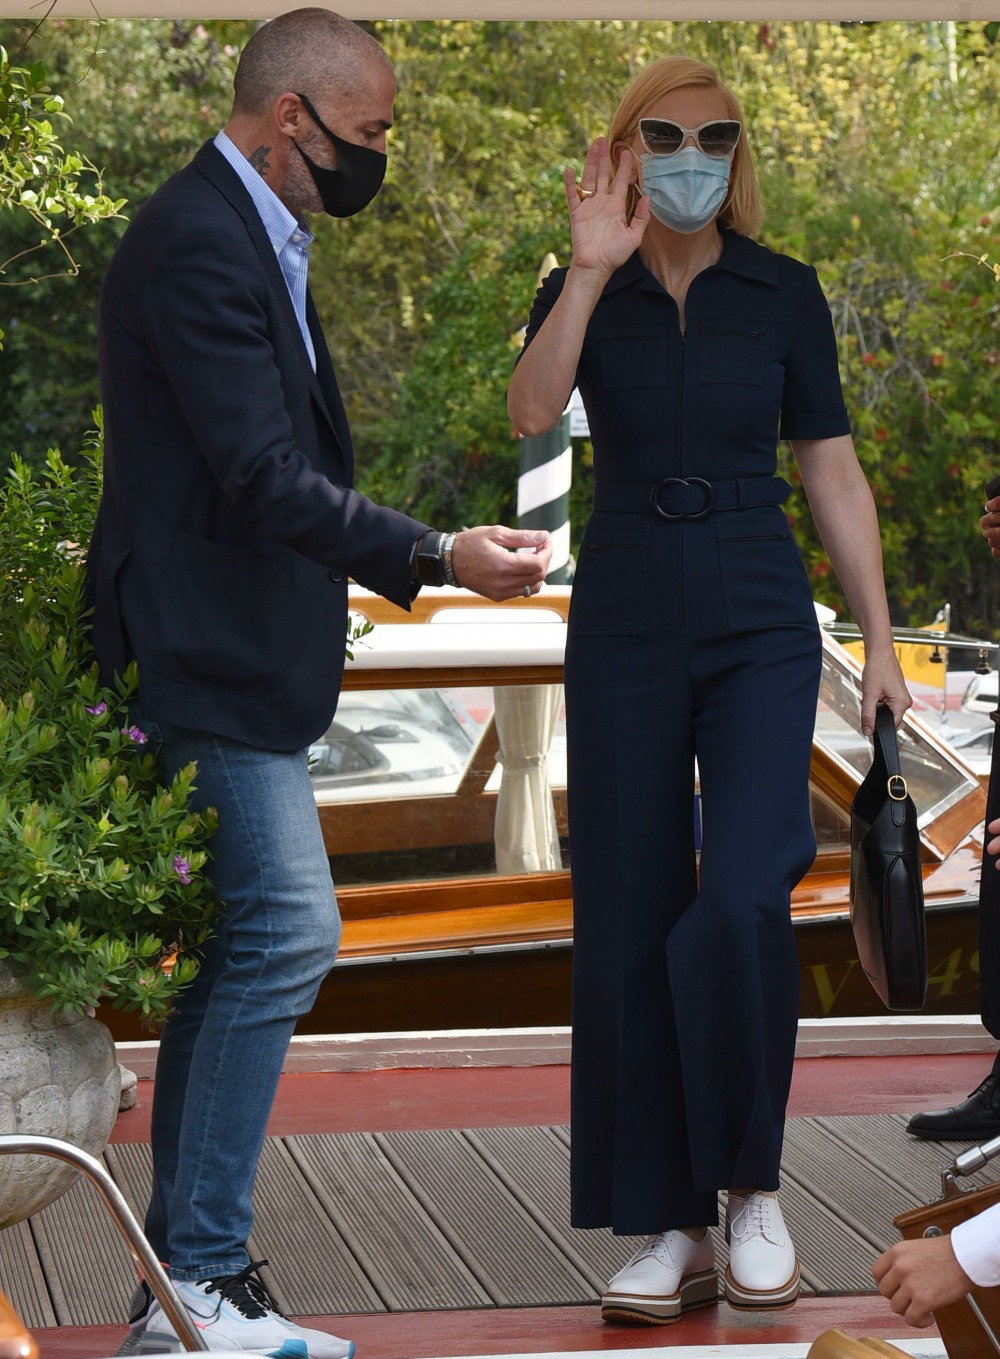 77th Venice Film Festival held in Venice, Italy - Cate Blanchett seen without her mask as she leaves her hotel